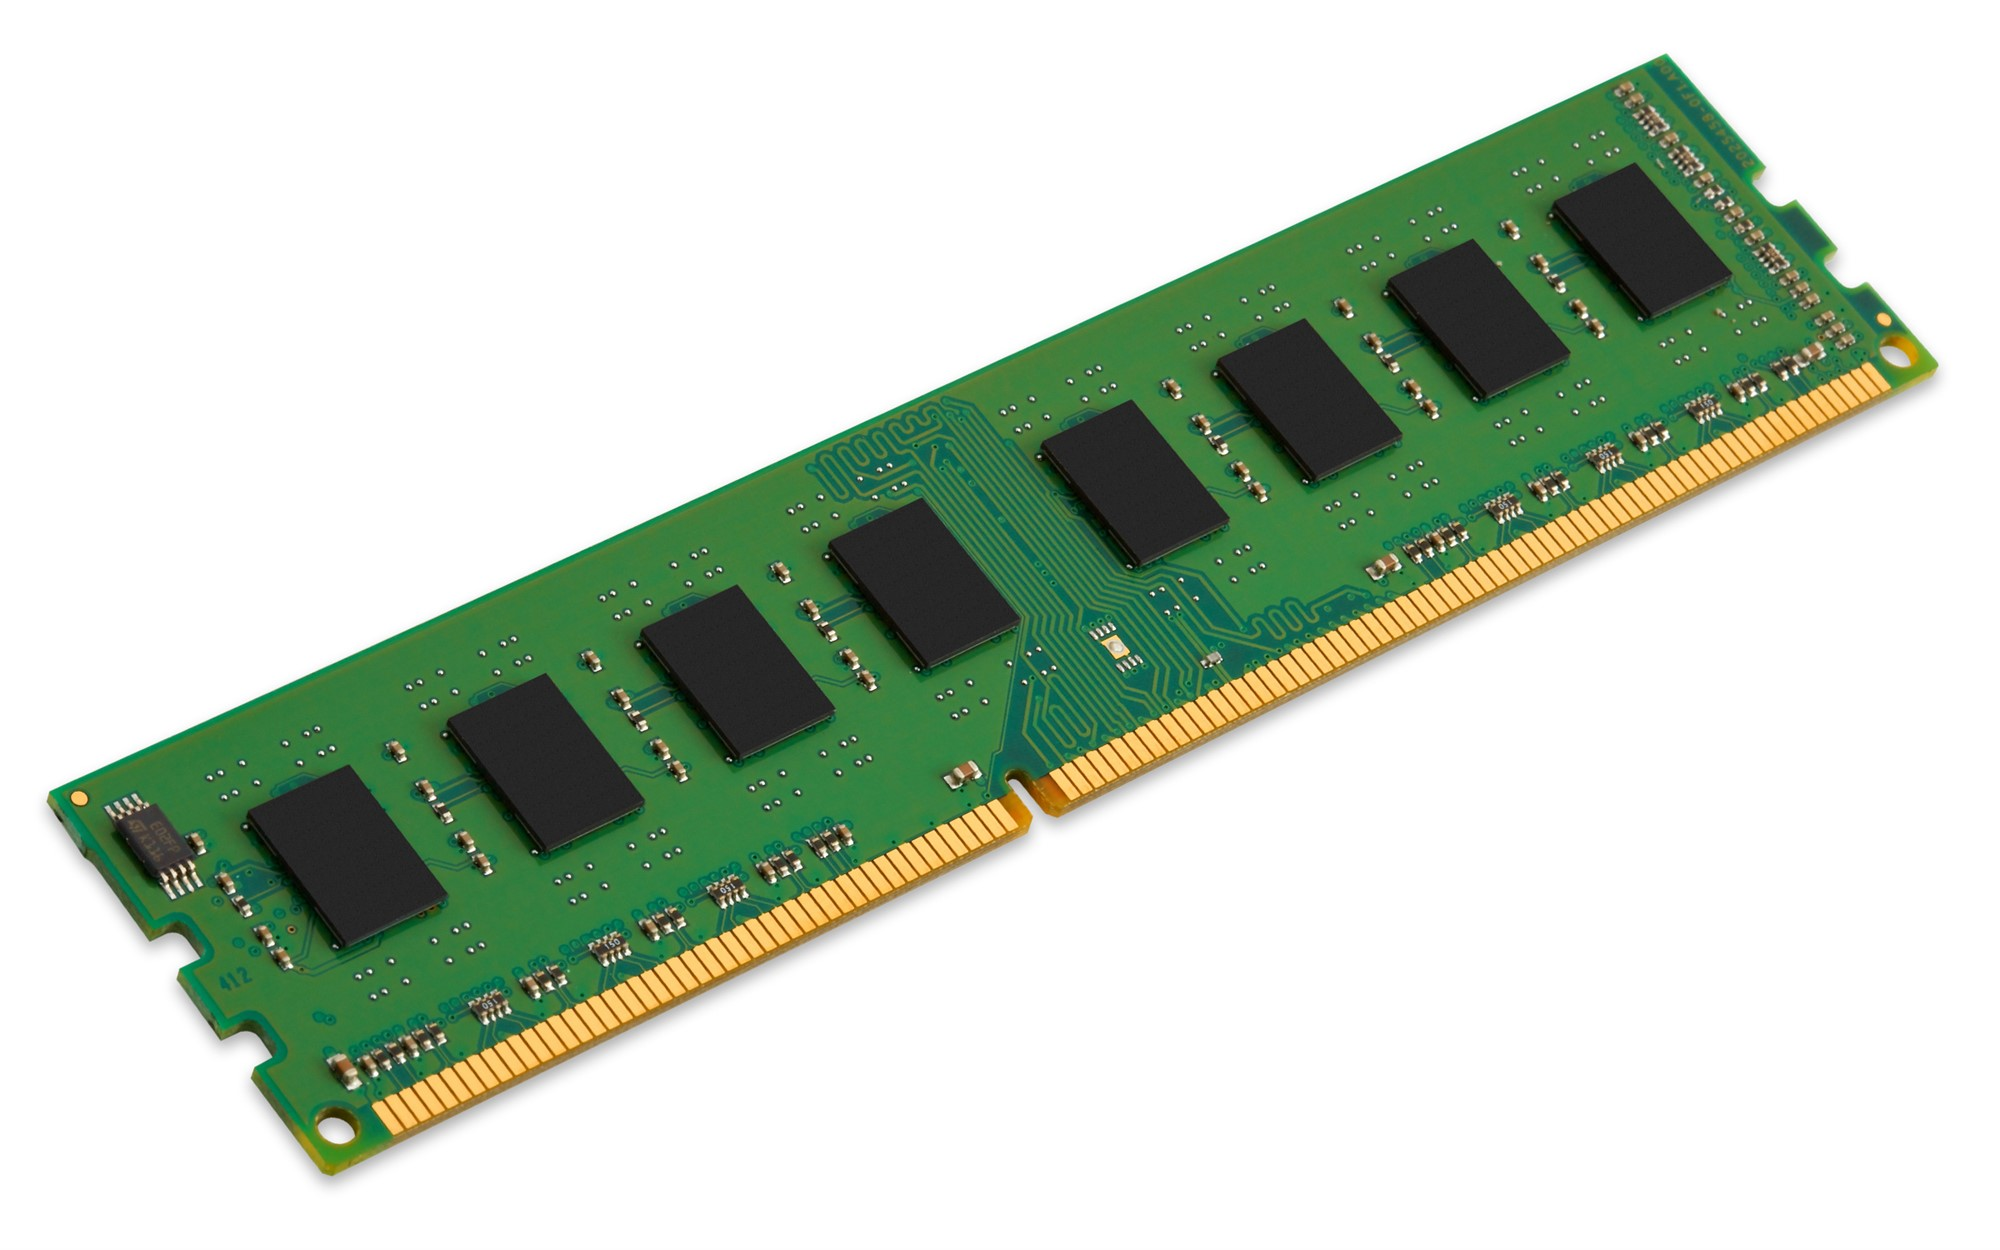 KINGSTON VALUERAM KVR13N9S8/4 4GB DDR3 1333MHZ MEMORY MODULE